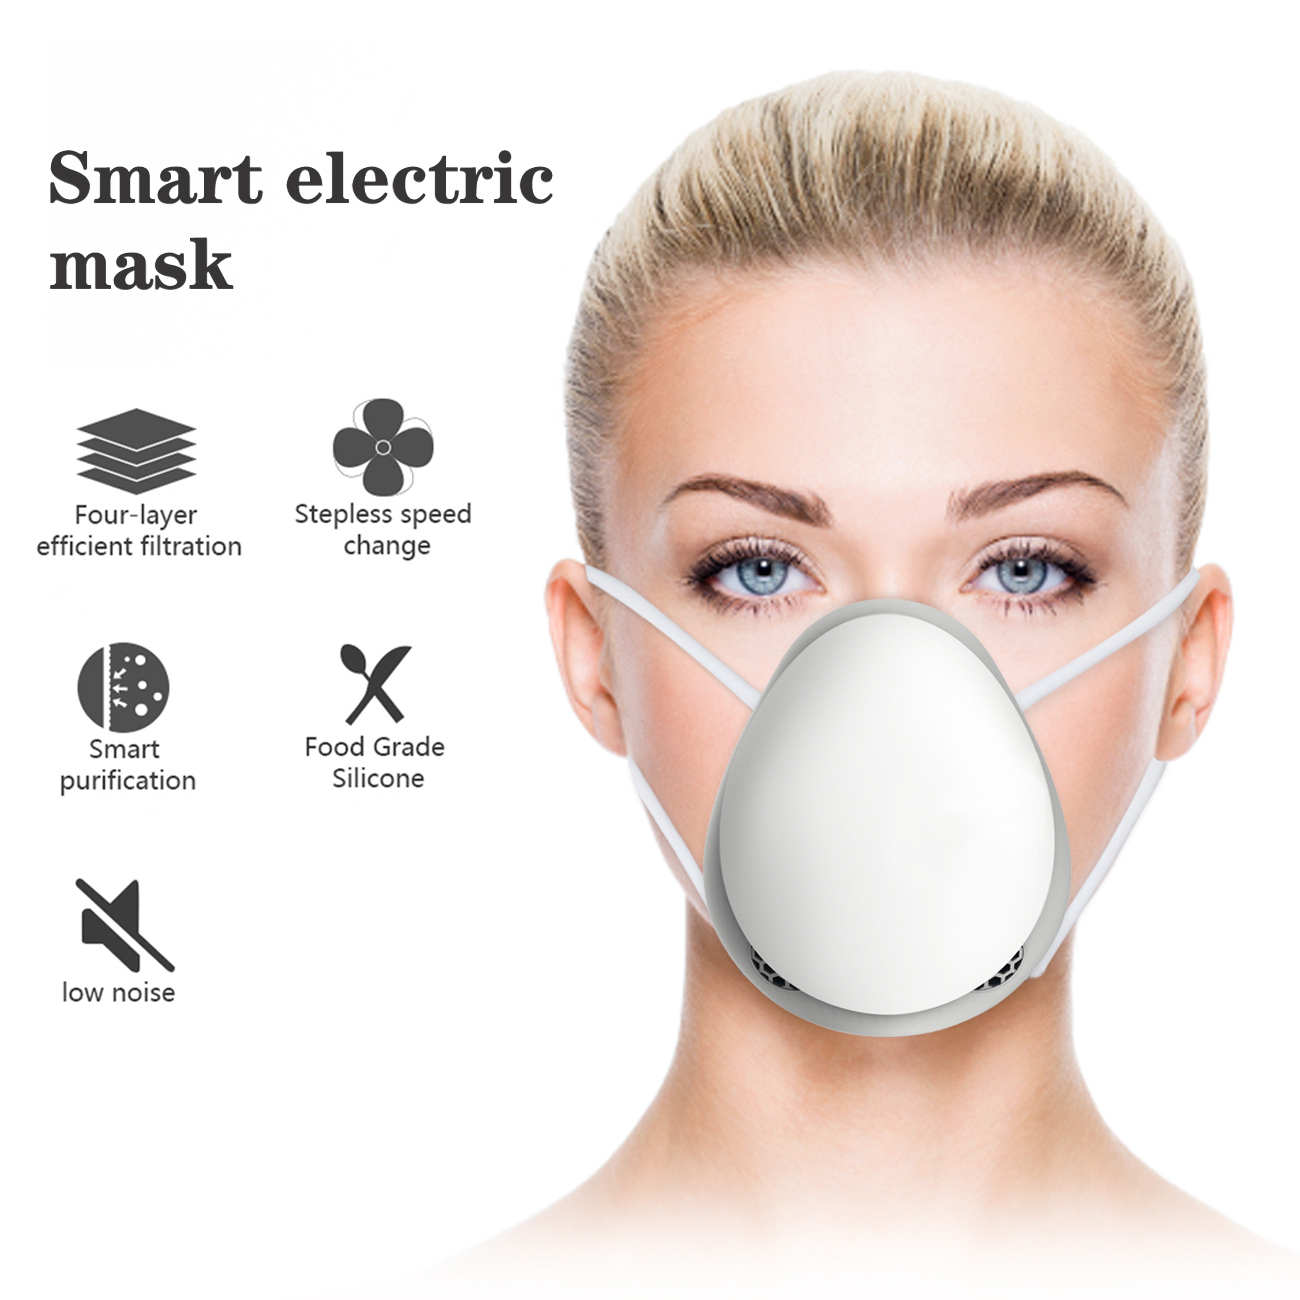 Reiko Smart Electric Mask with 4-Layer efficient filtration FM05-WH